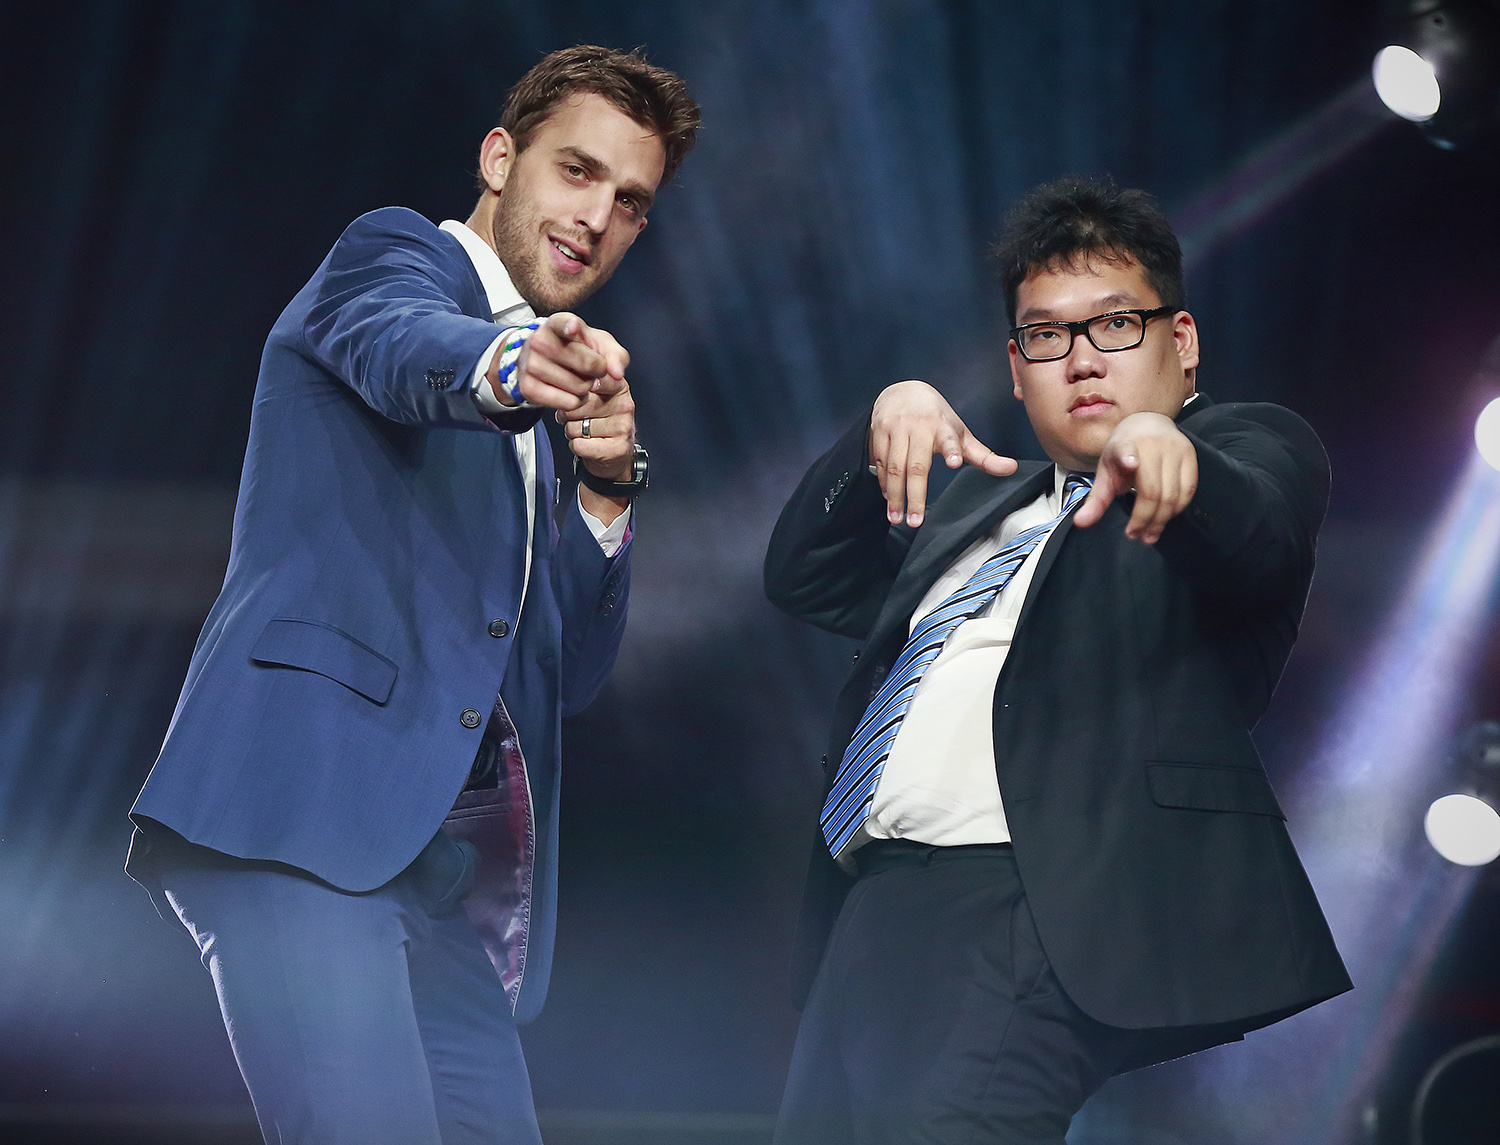 Brandon Sutter and Alex Pang at the 2017 Sports Celebrities Festival